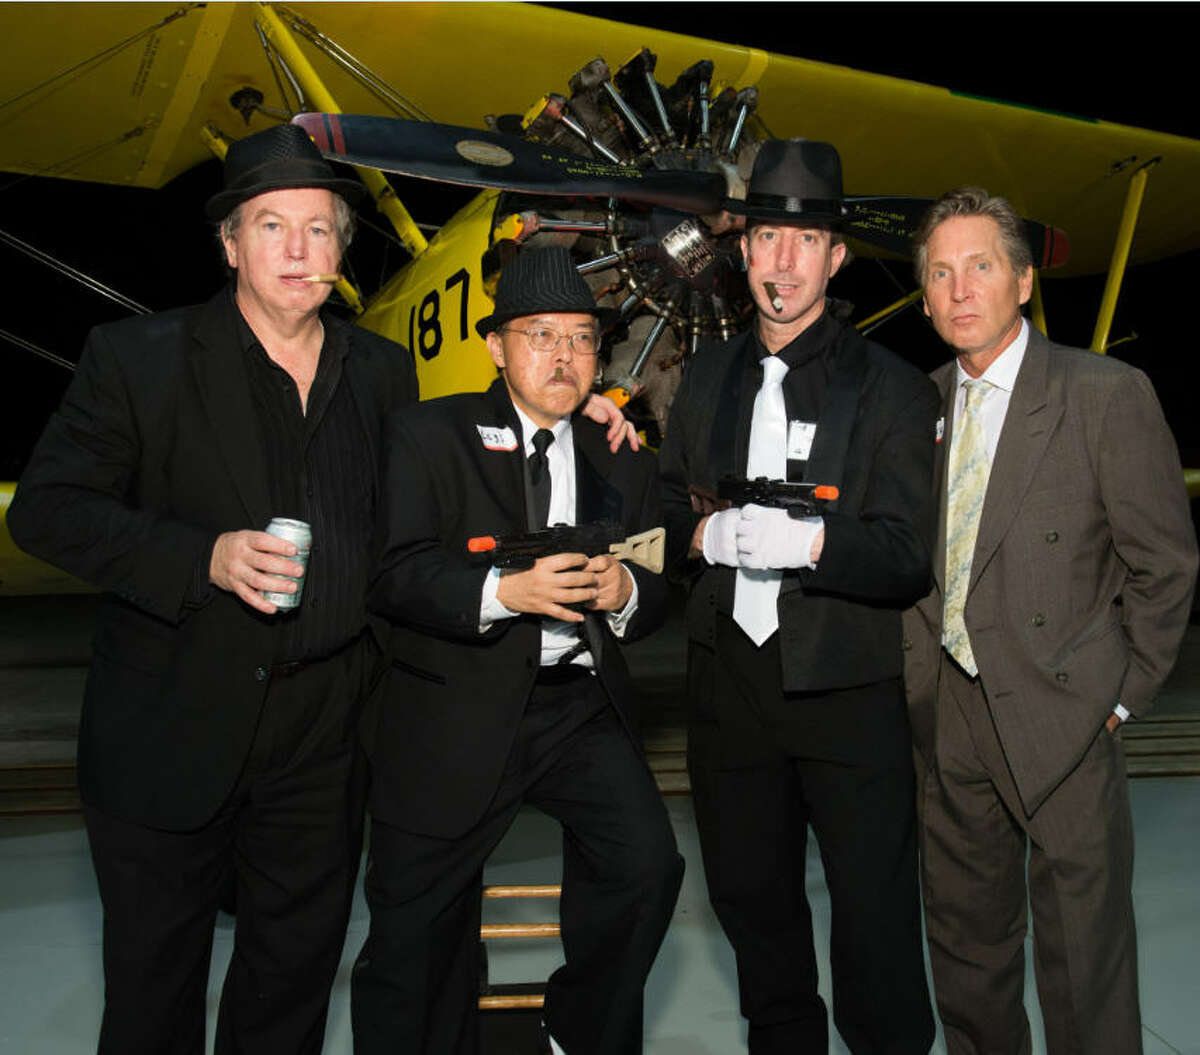 A 1930'?'s Stearman Biplane served as one of the photo opportunities at last year's Speakeasy party. This year's Speakeasy will be Nov. 10. From left are: Dennis